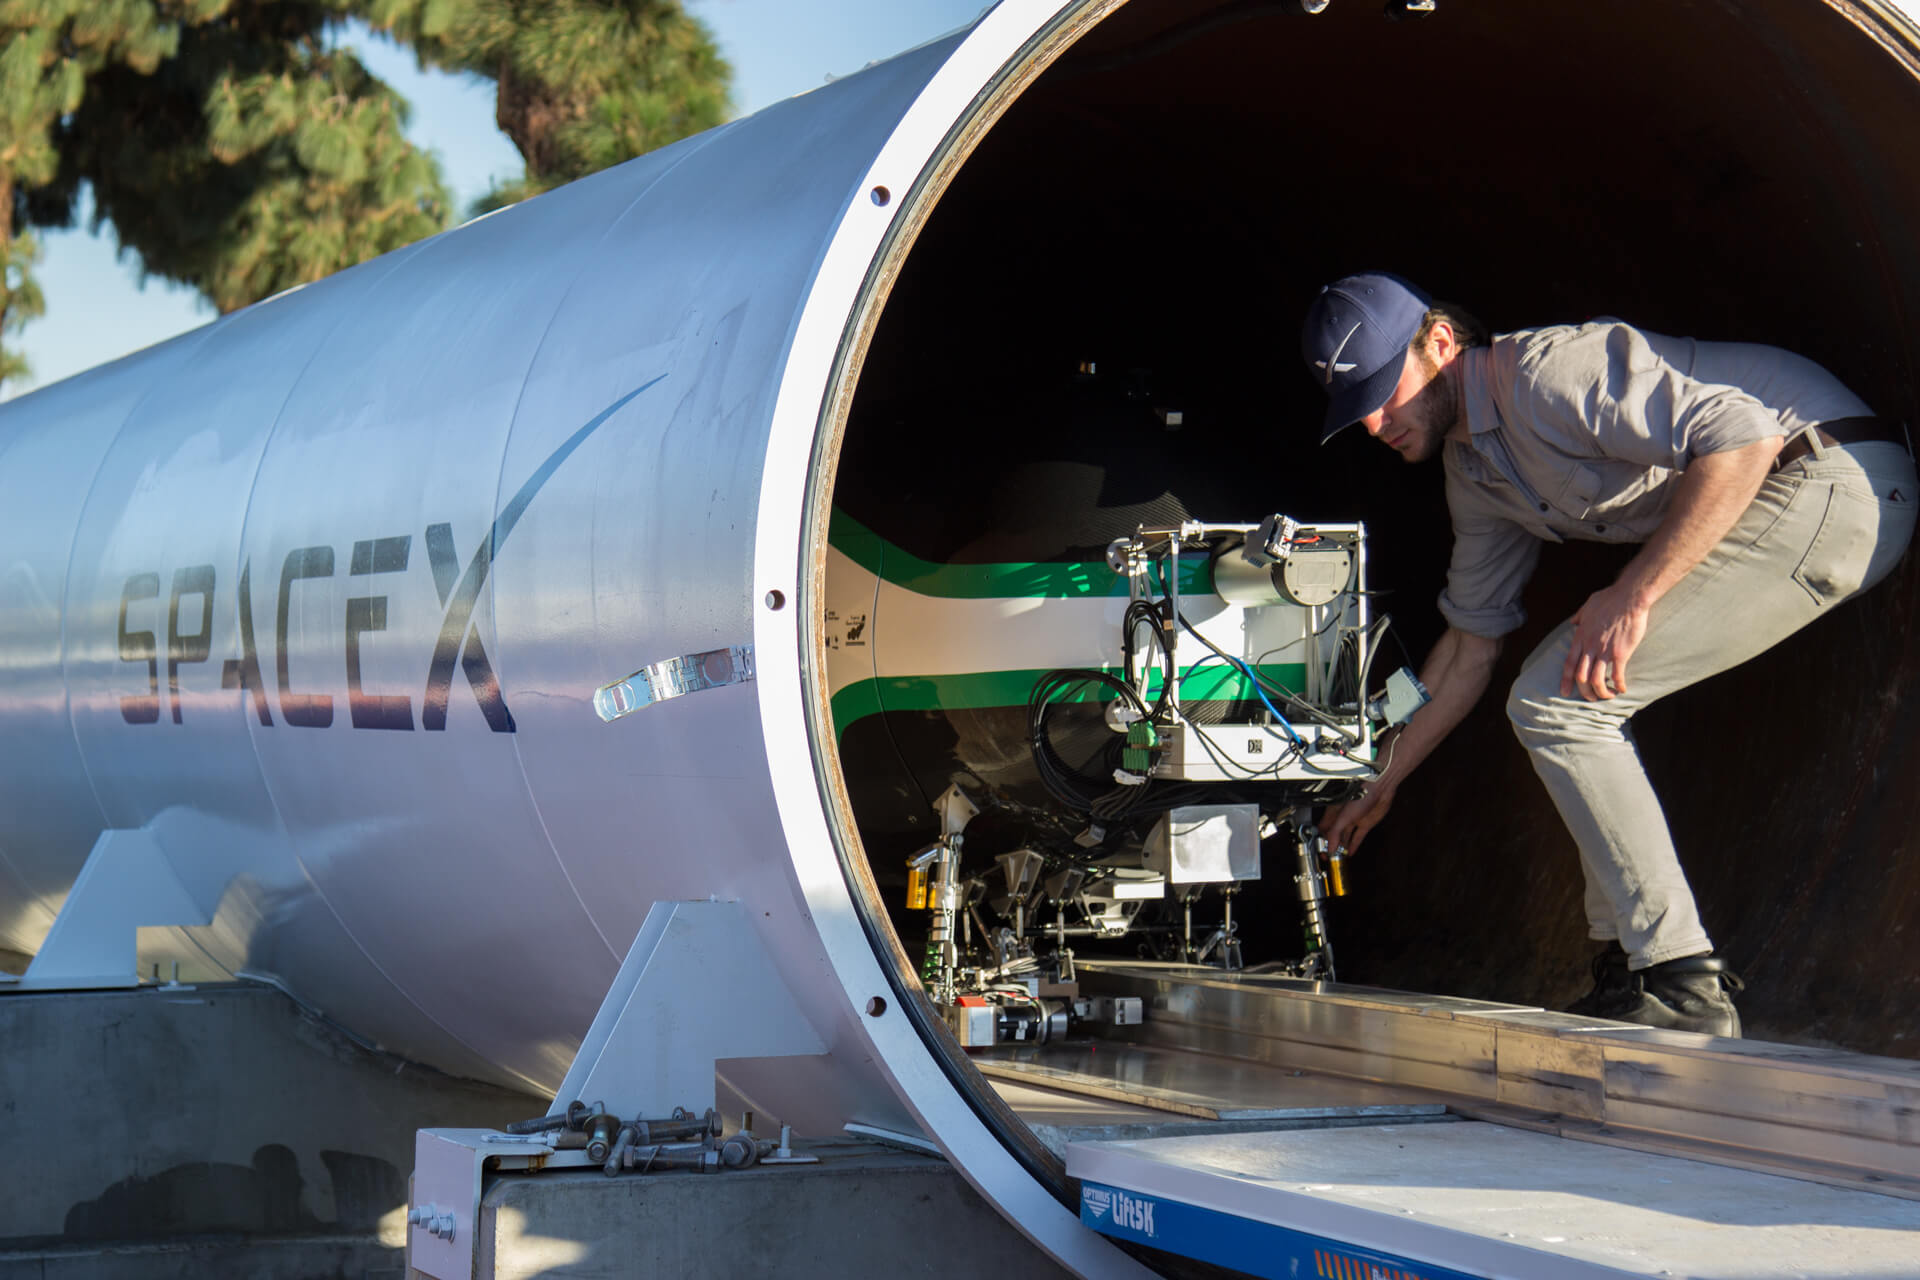 SpaceX Hyperloop team aims for new high-speed acceleration and braking test record